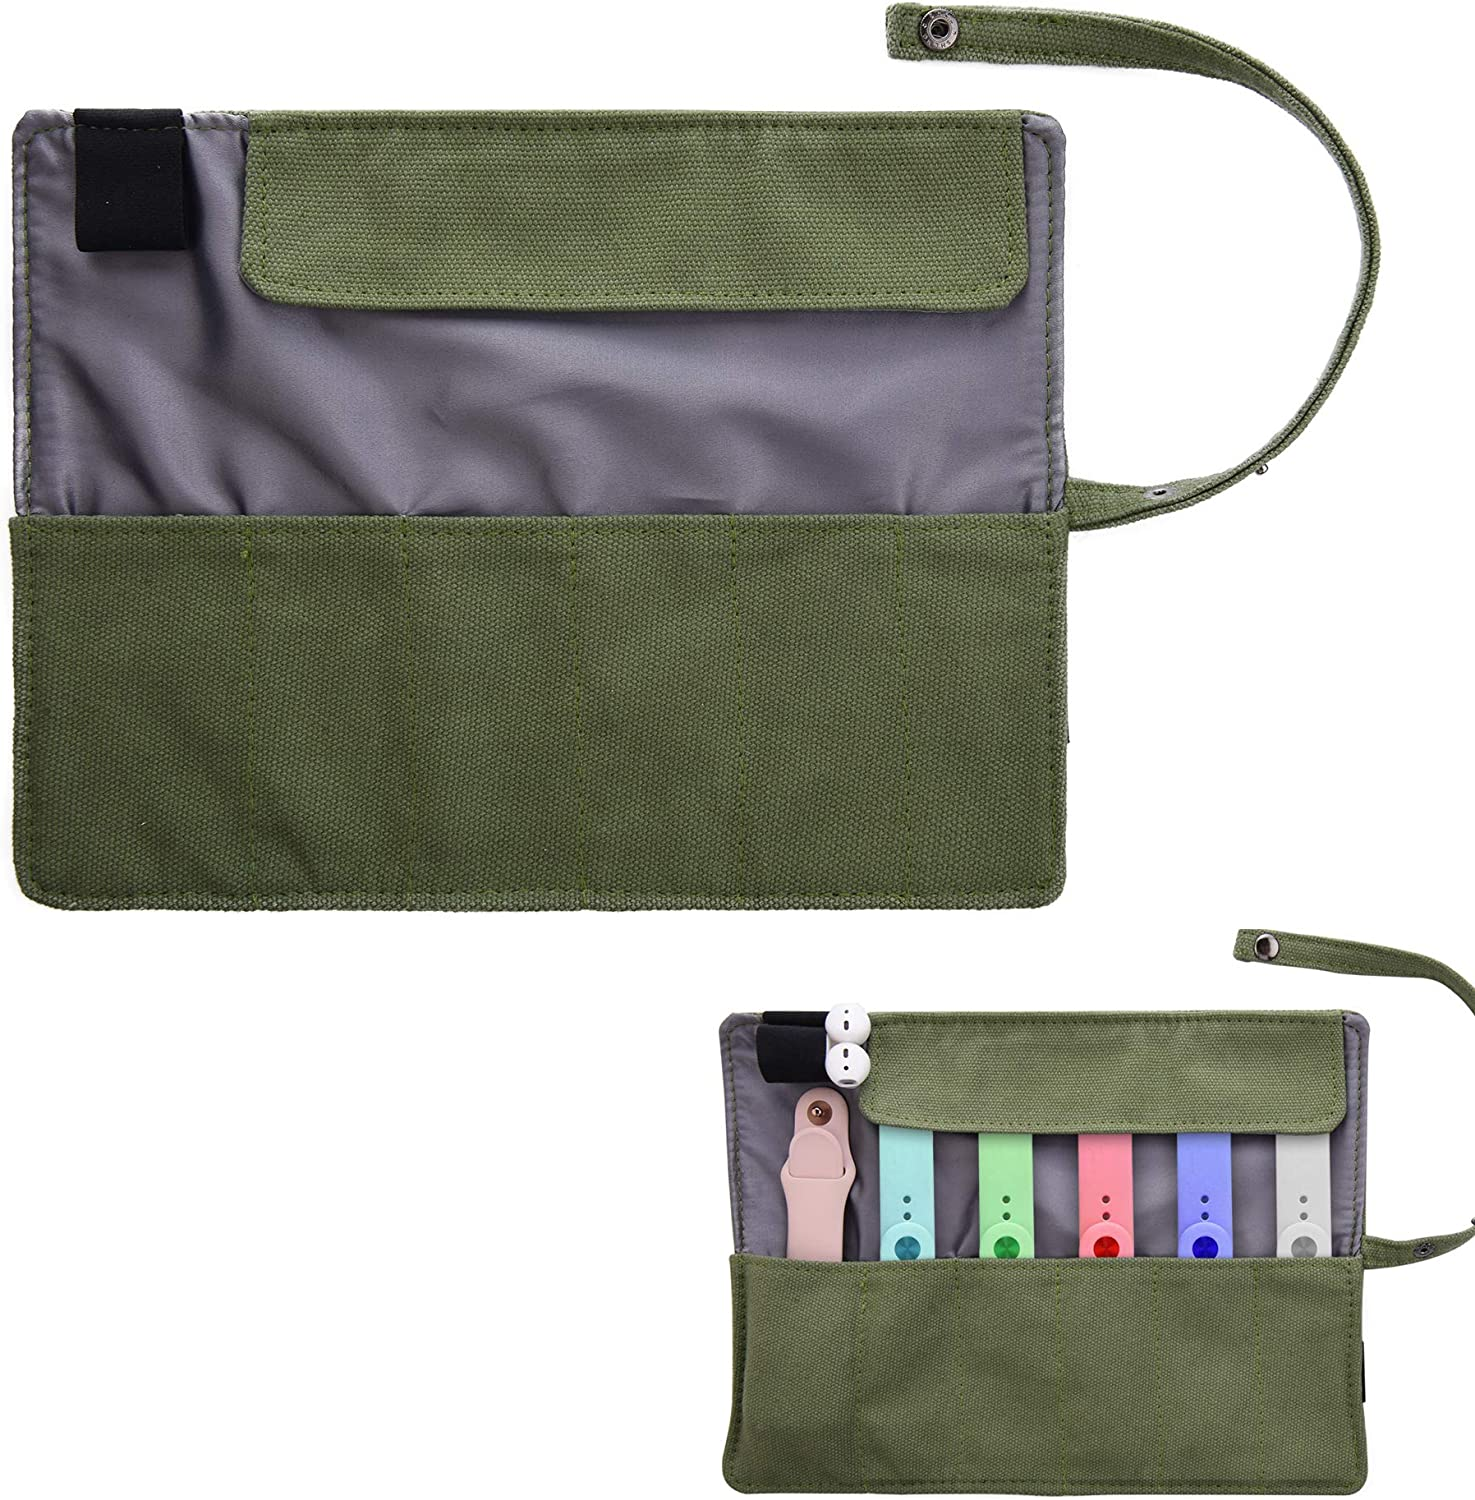 Watch Band Accessories Smartwatch Organizer Holder Pouch Protable Bag Travel Pouch Pencil Organizer Bag-Compatible with Apple Watchbands, Garmin Watch Band, Samsung Watch Band--Olive Green